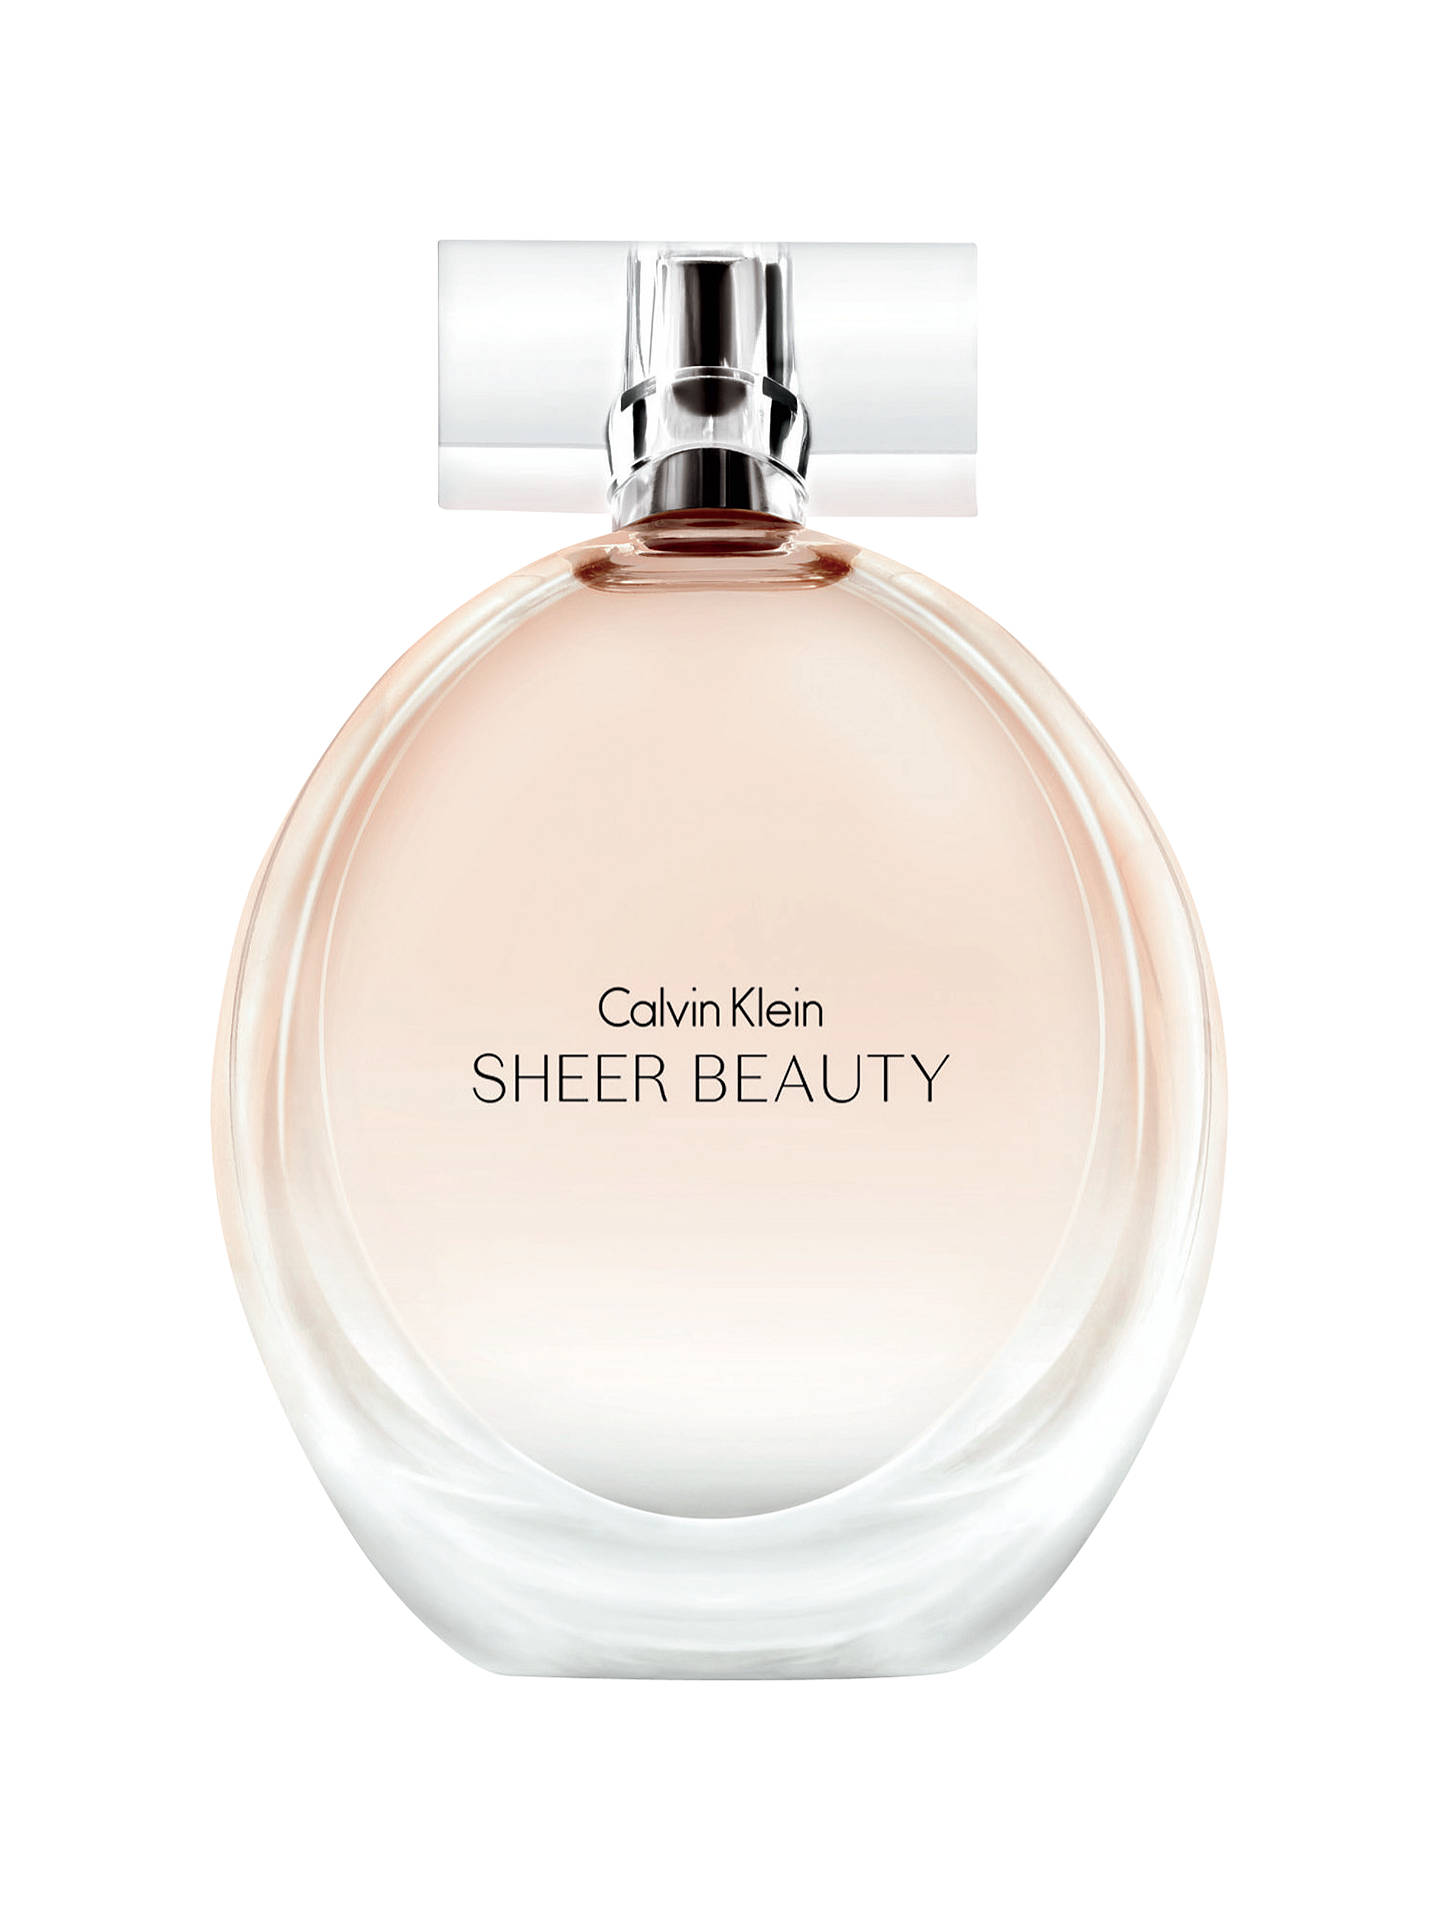 Buy Calvin Klein Sheer Beauty Eau de Toilette, 100ml Online at johnlewis.com